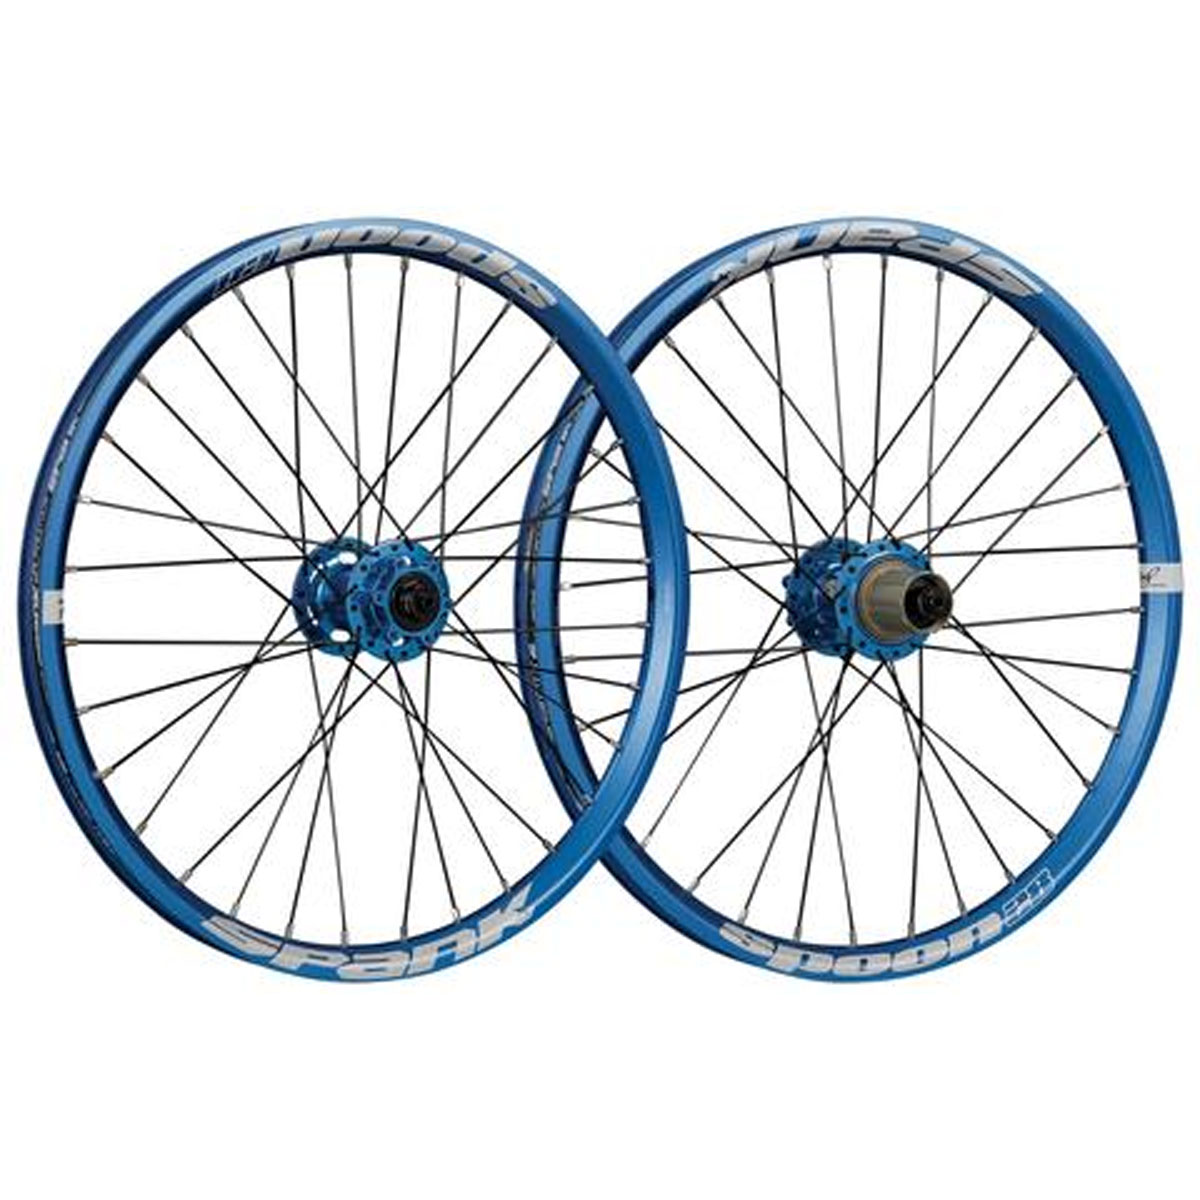 Spank Spoon 28 Bicycle Wheelset - 24 inches - C08SN2411